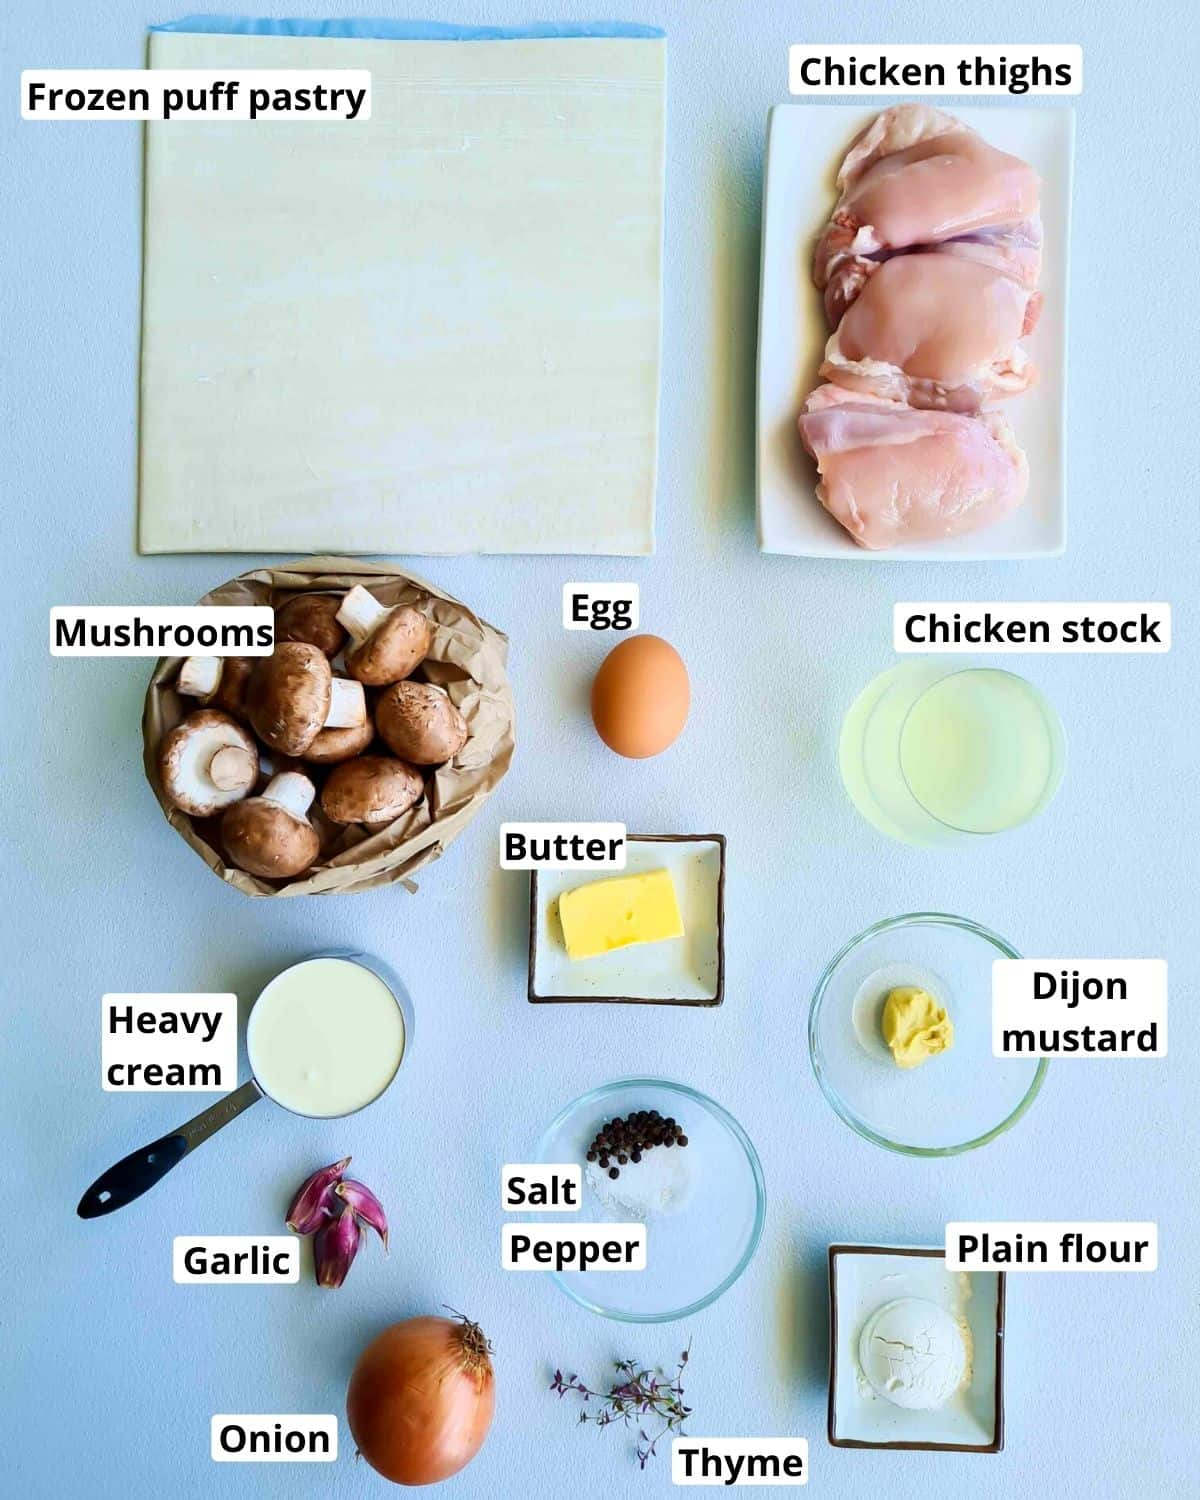 All the ingredients required to make this recipe, labeled